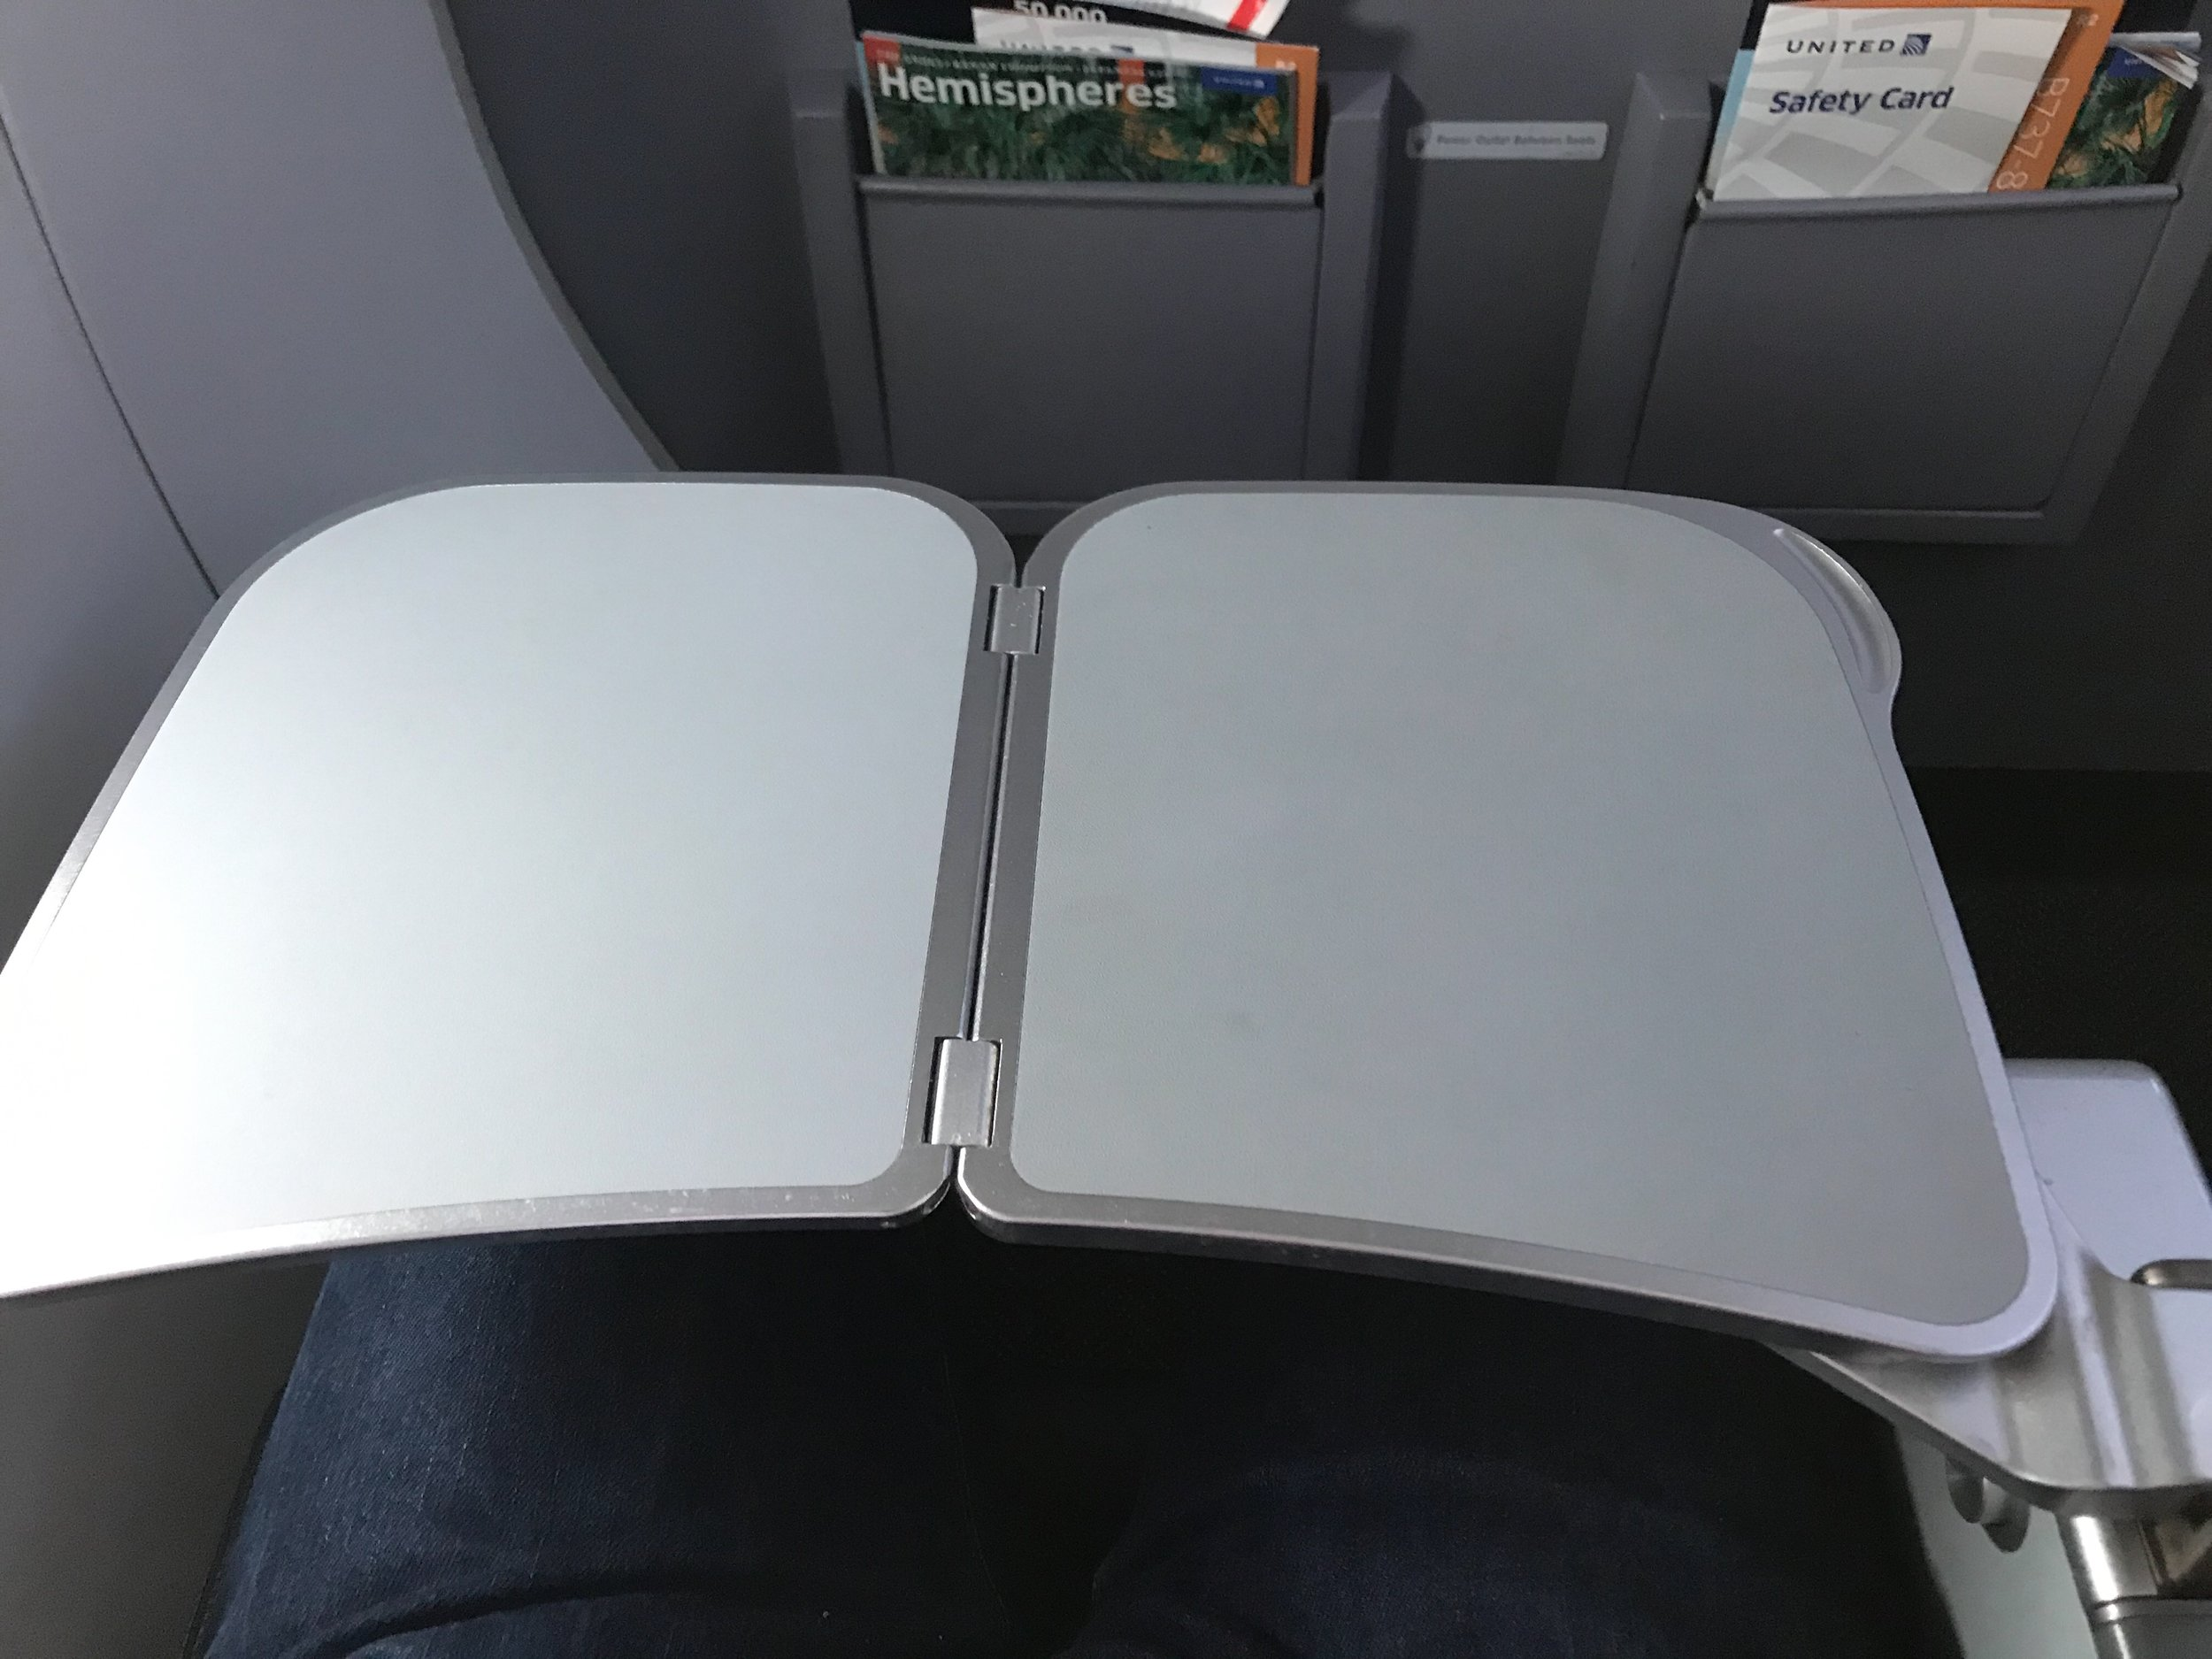 The tray table in Row 7 (seats D, E, and F) and Row 8 (seats A, B, and C) folds out of the the armrest, making the armrest immovable.